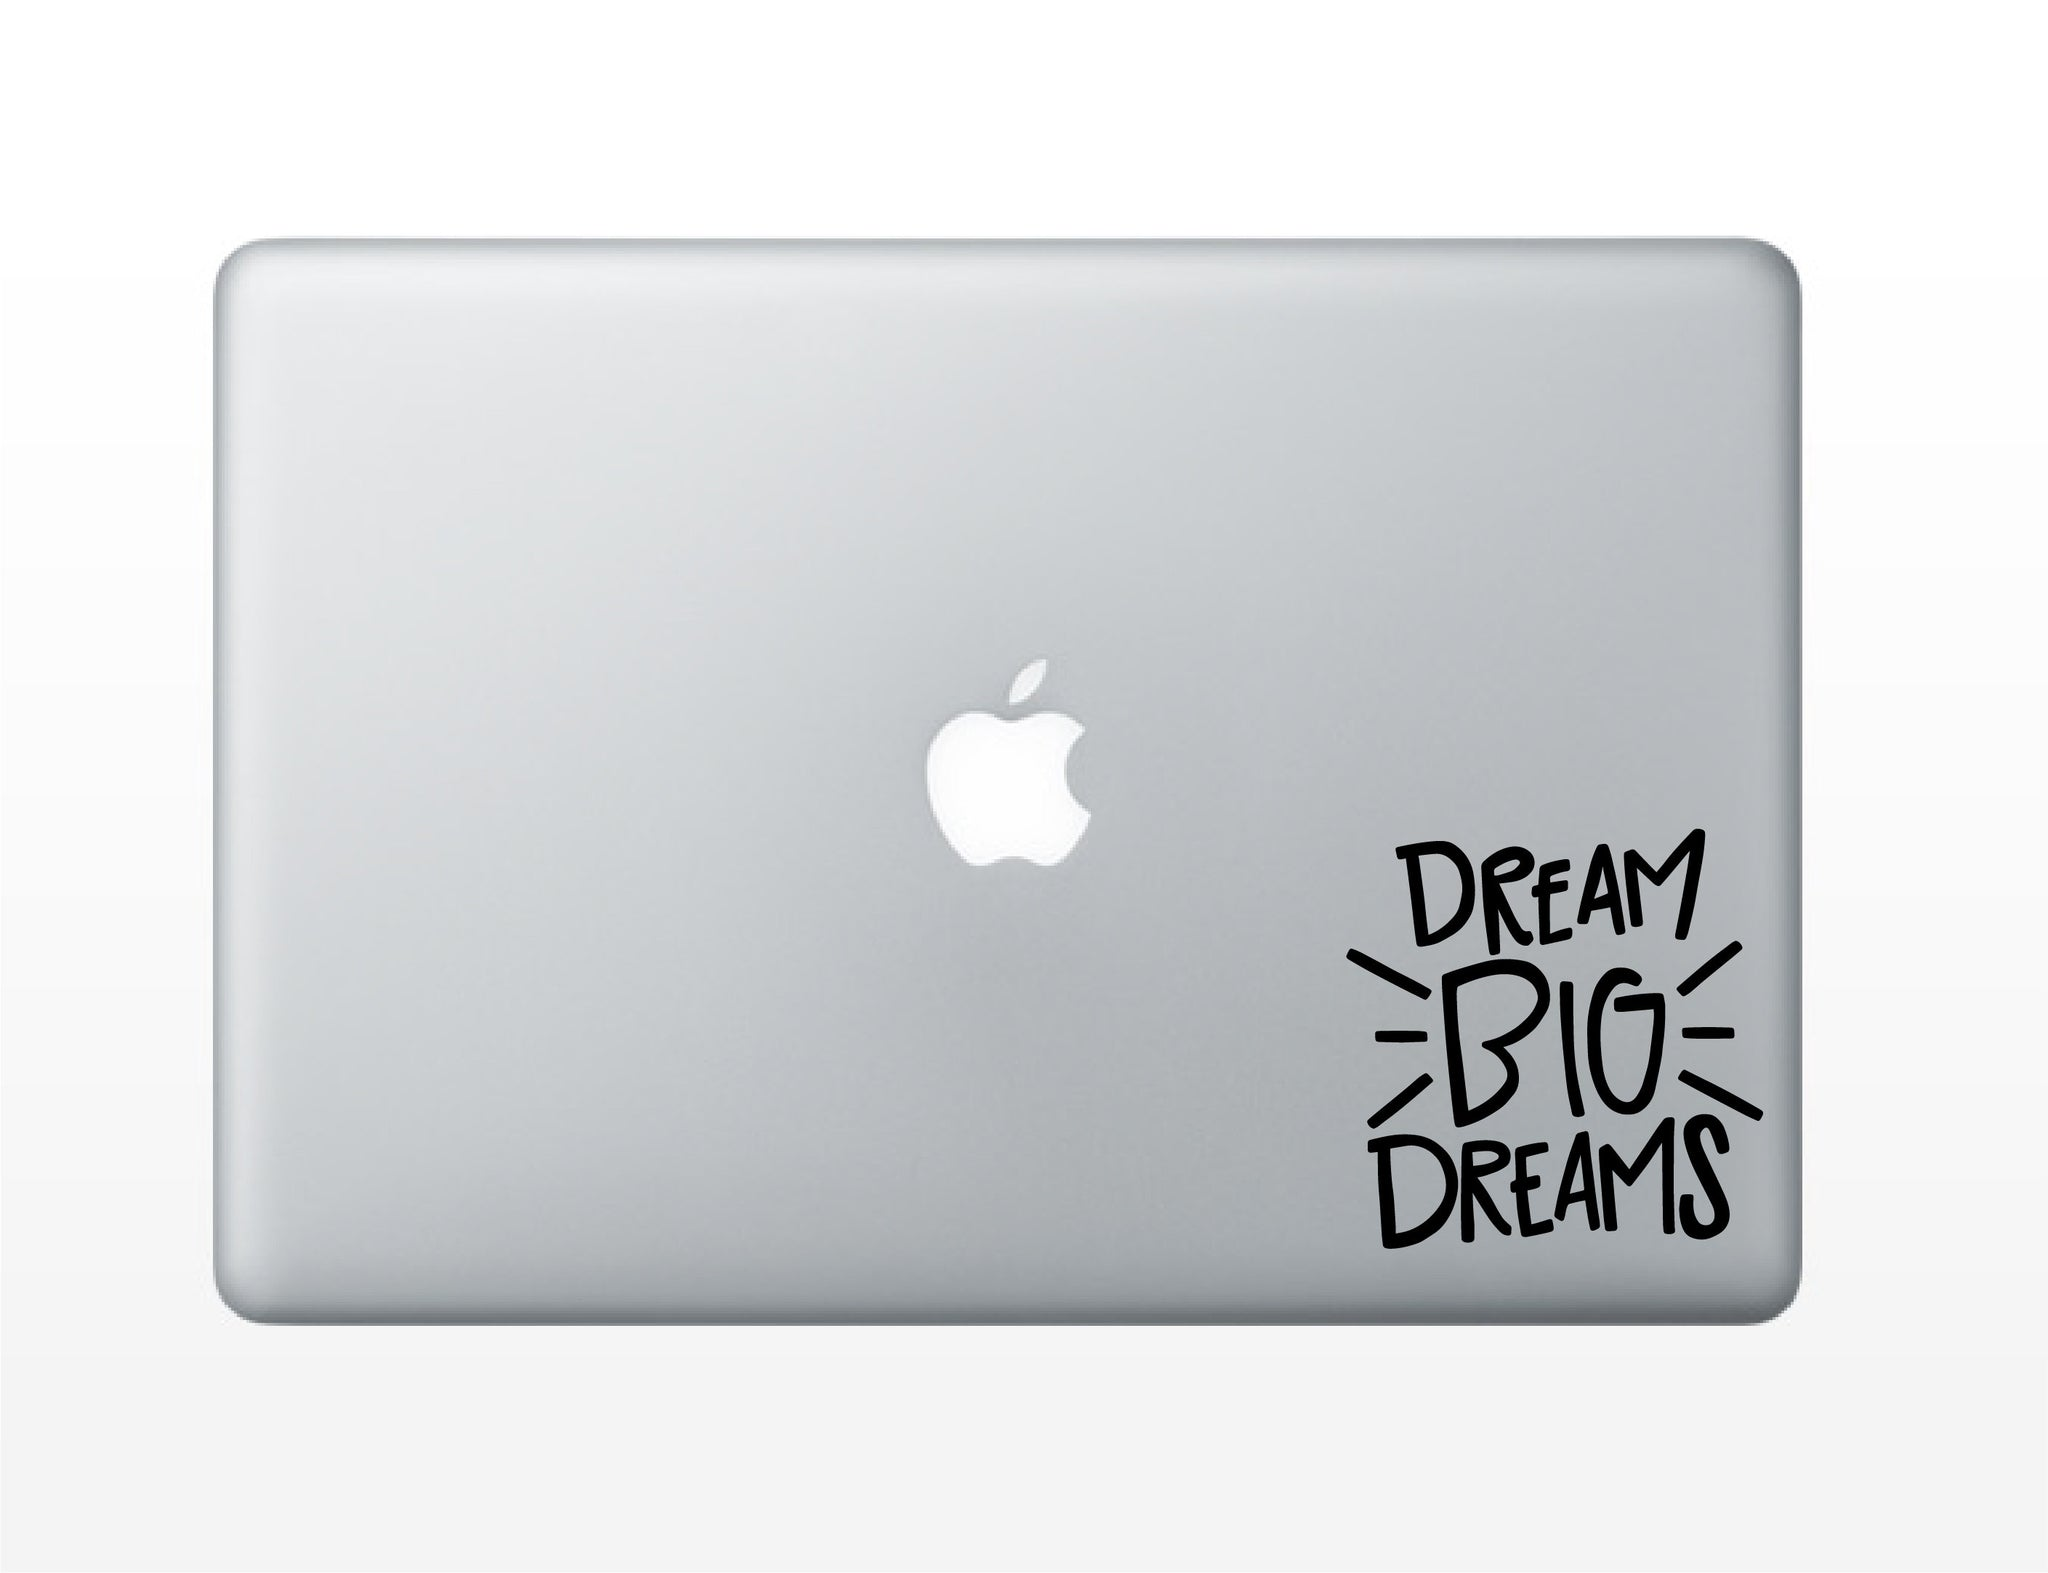 Dream Big Dreams Vinyl Decal